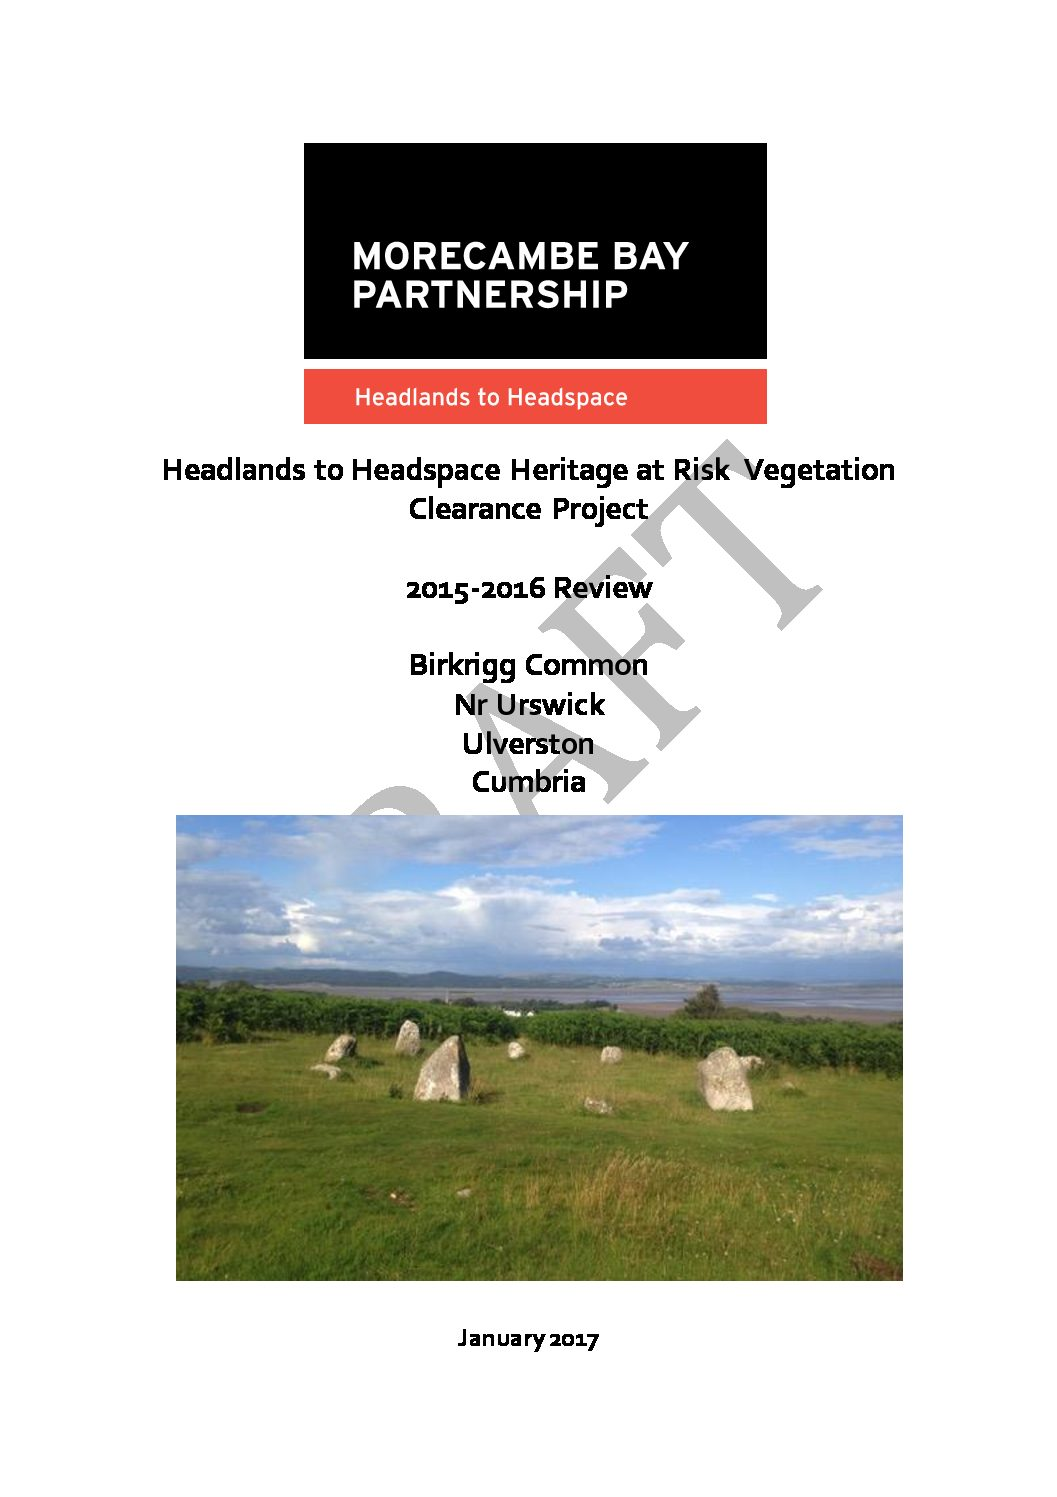 Headlands to Headspace Heritage at Risk Vegetation Clearance Project, 2015-2016 Review